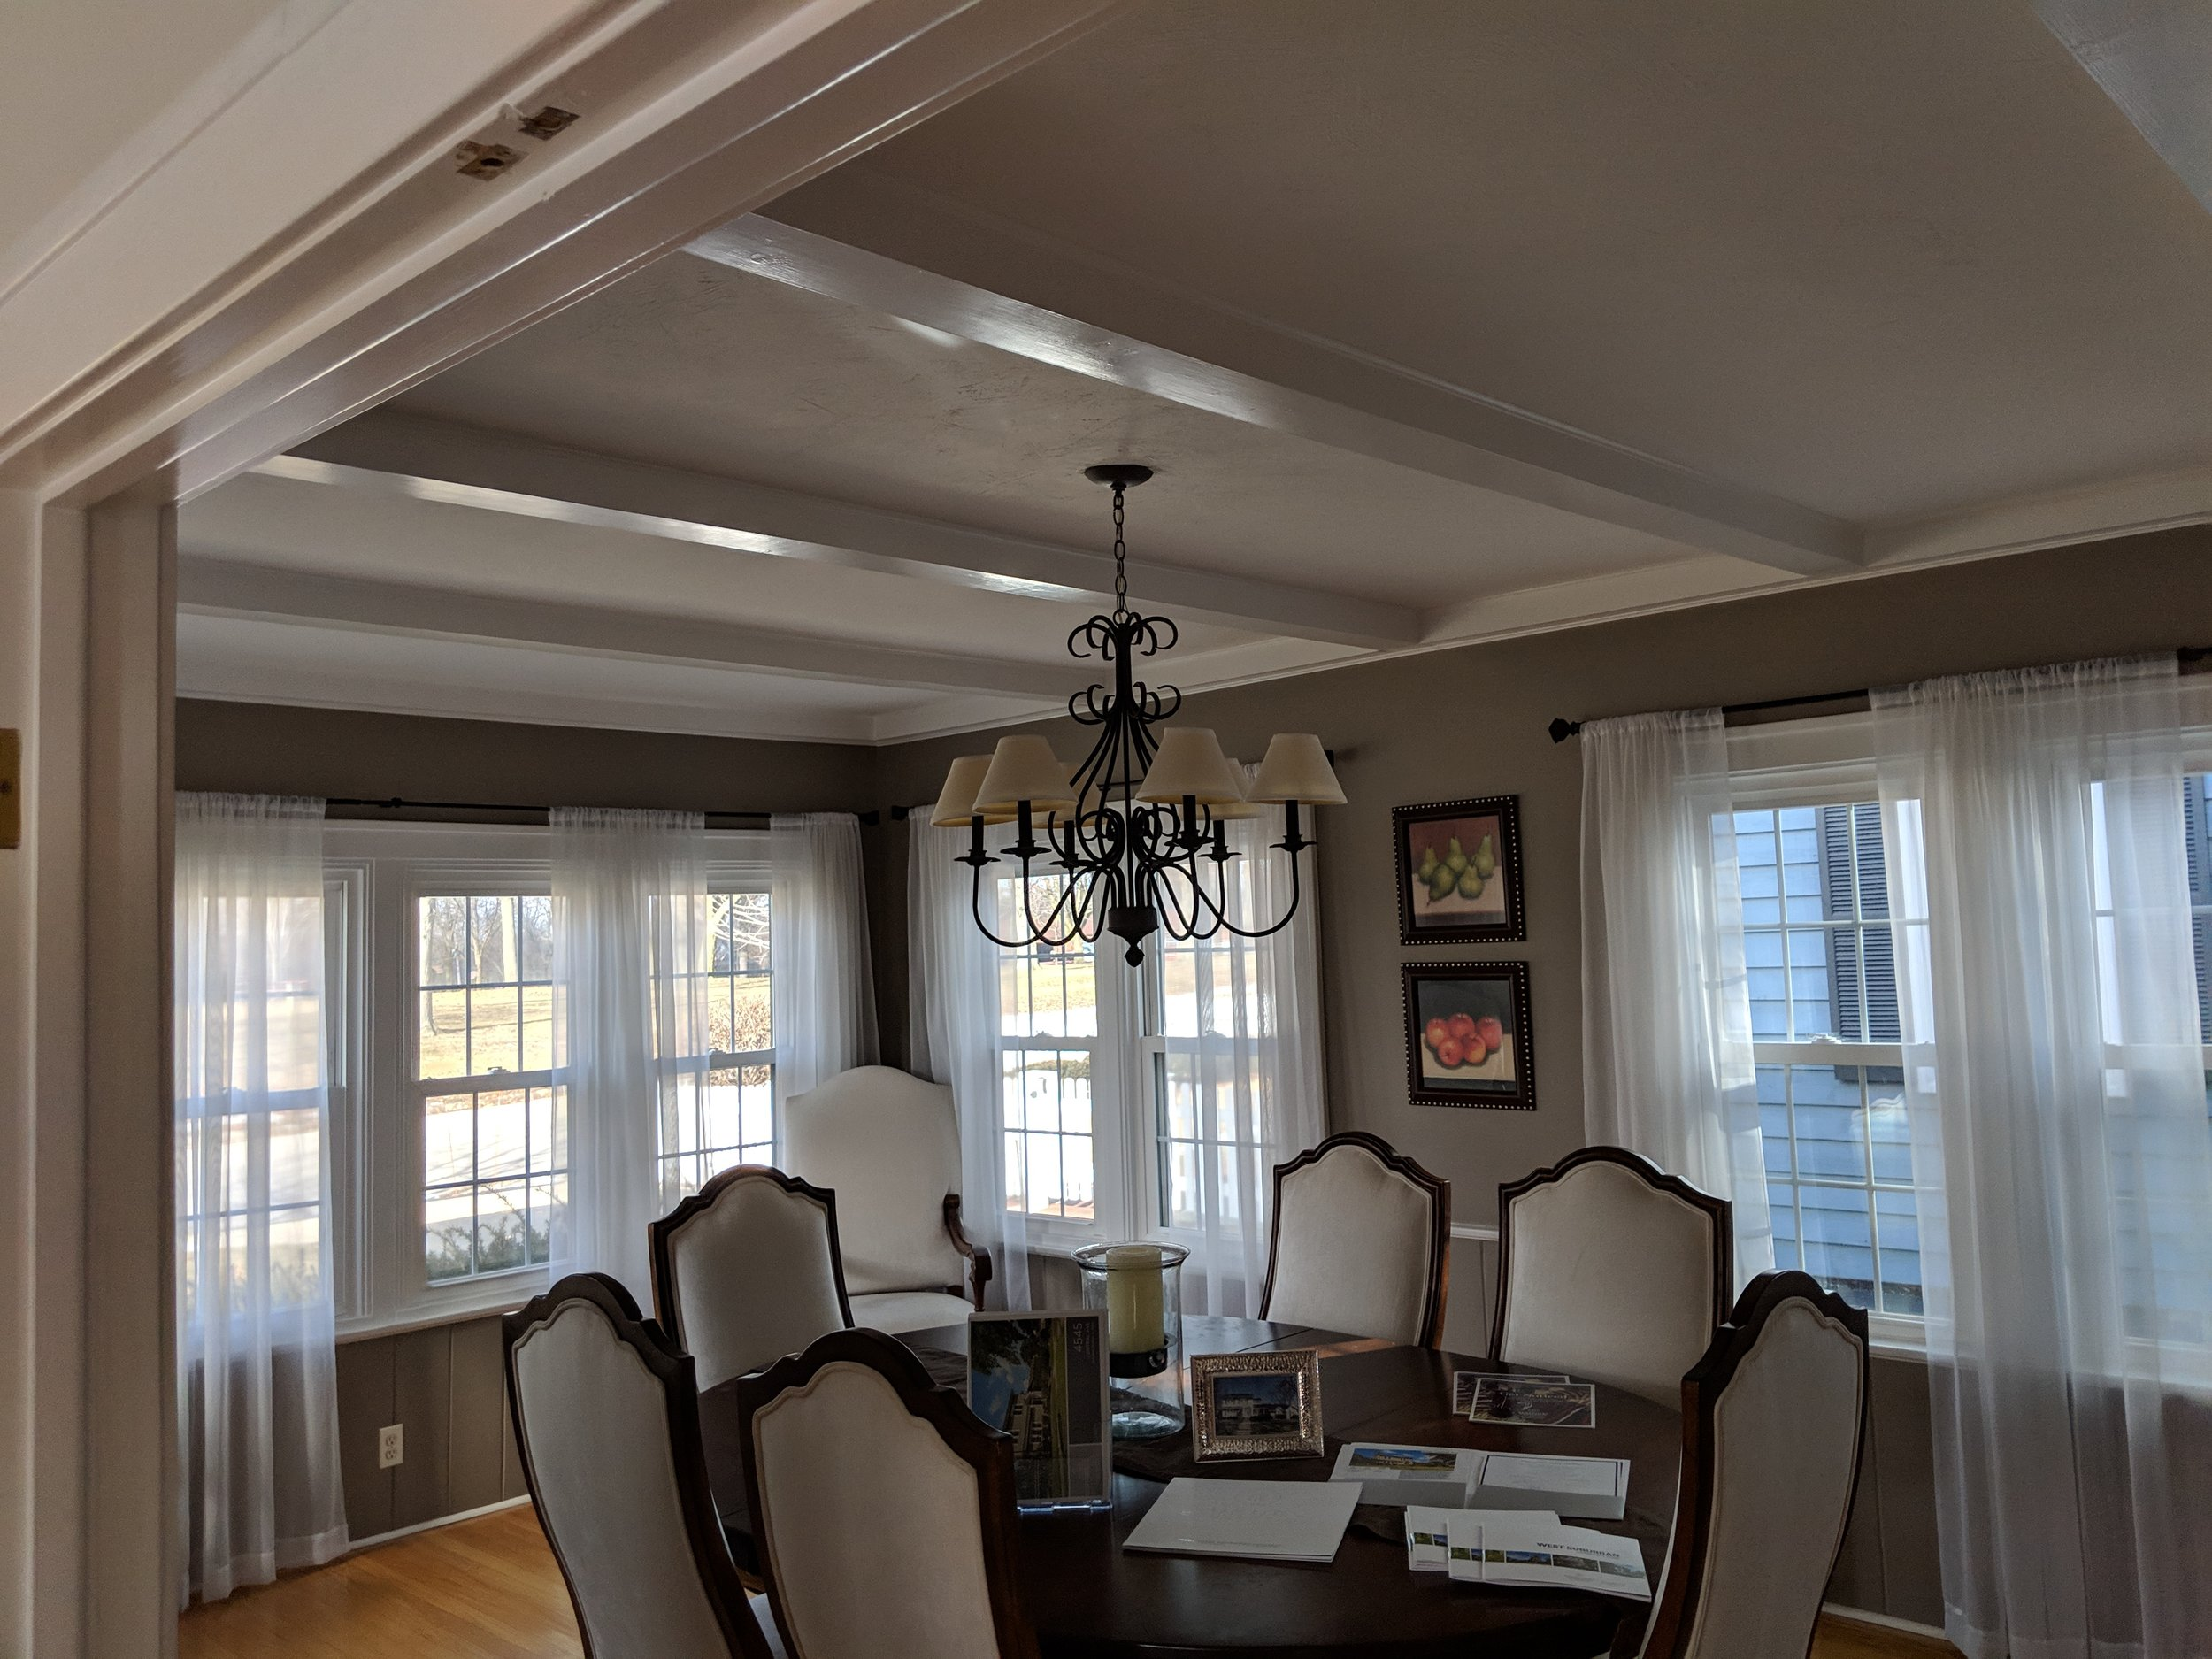 The existing dining room was surrounded with windows, and had a unique ceiling with beautiful beams running across it to add some height and texture to the space but it needed to be brightened up, and it deserved a longer table to really take advantage of the space.